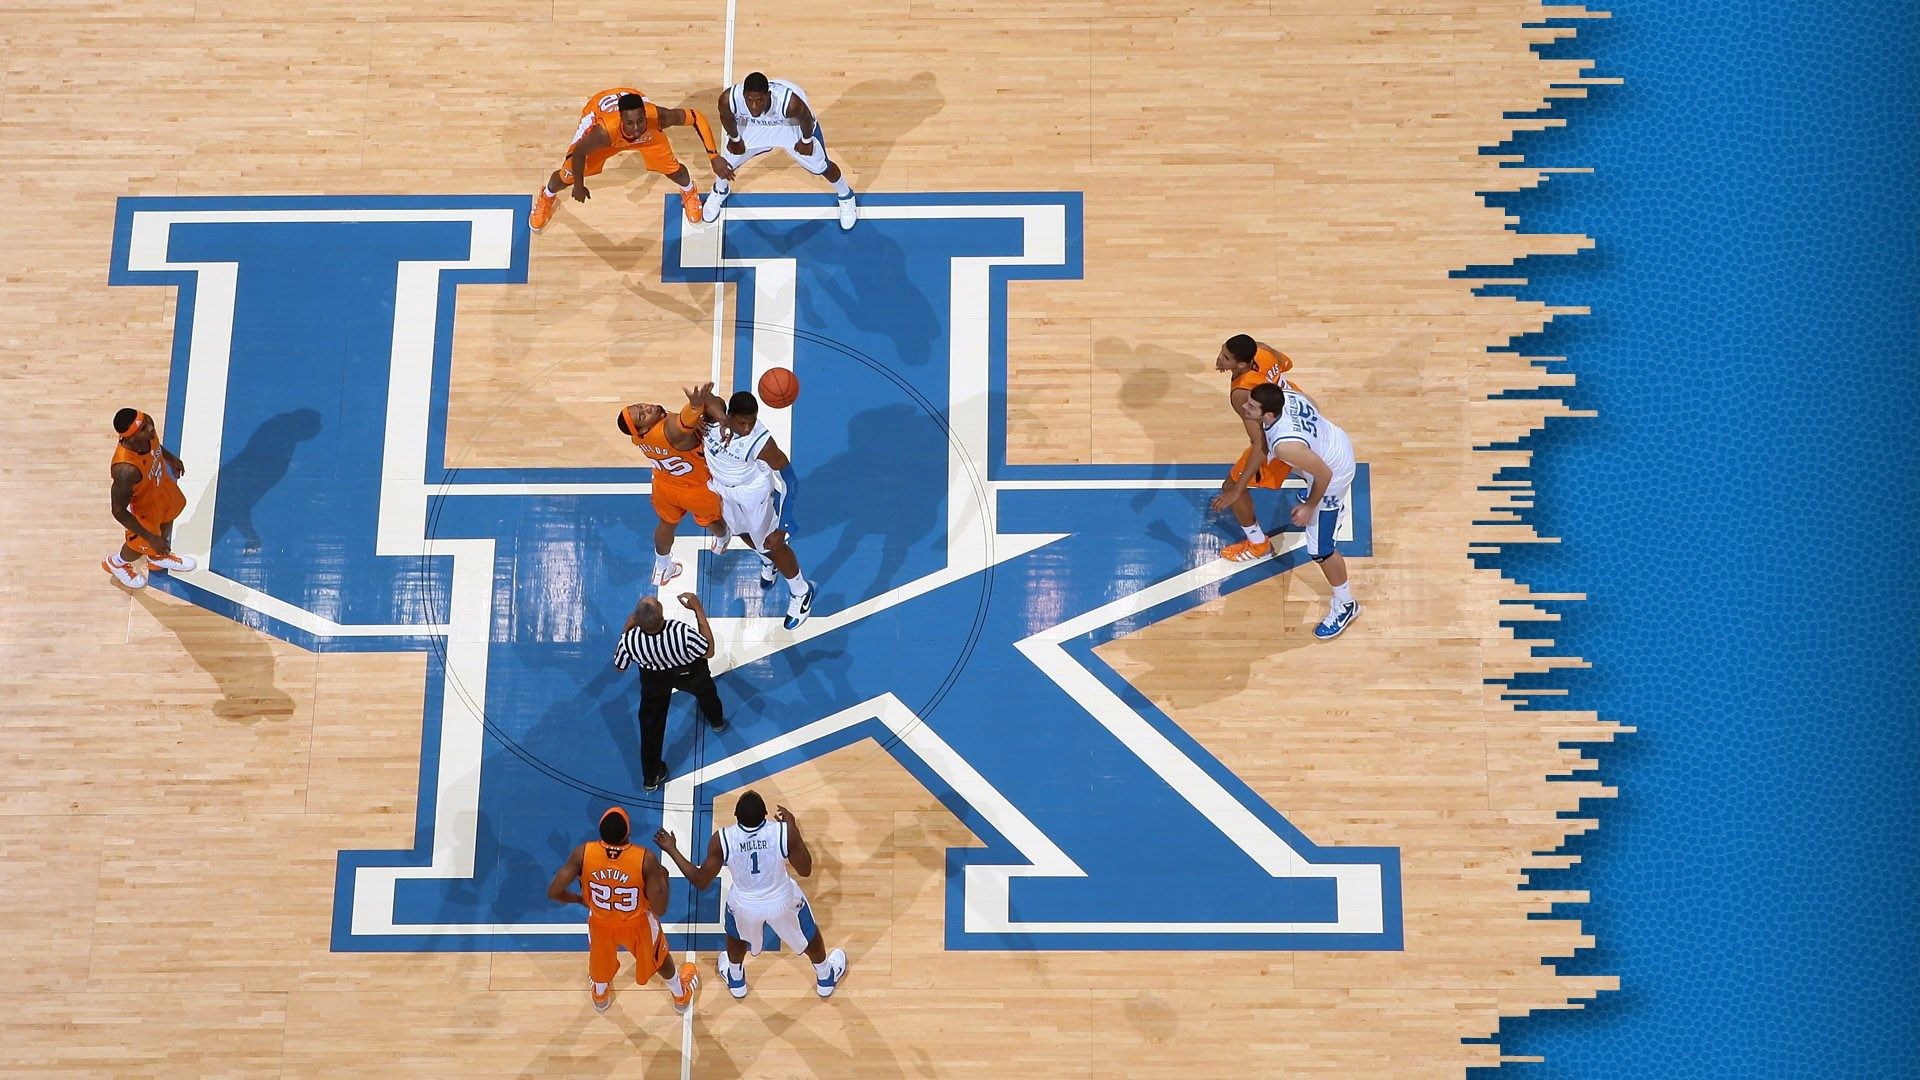 Uk Wildcats Ukbasketball Basketball Wallpaper Kentucky Basketball Wild Cats